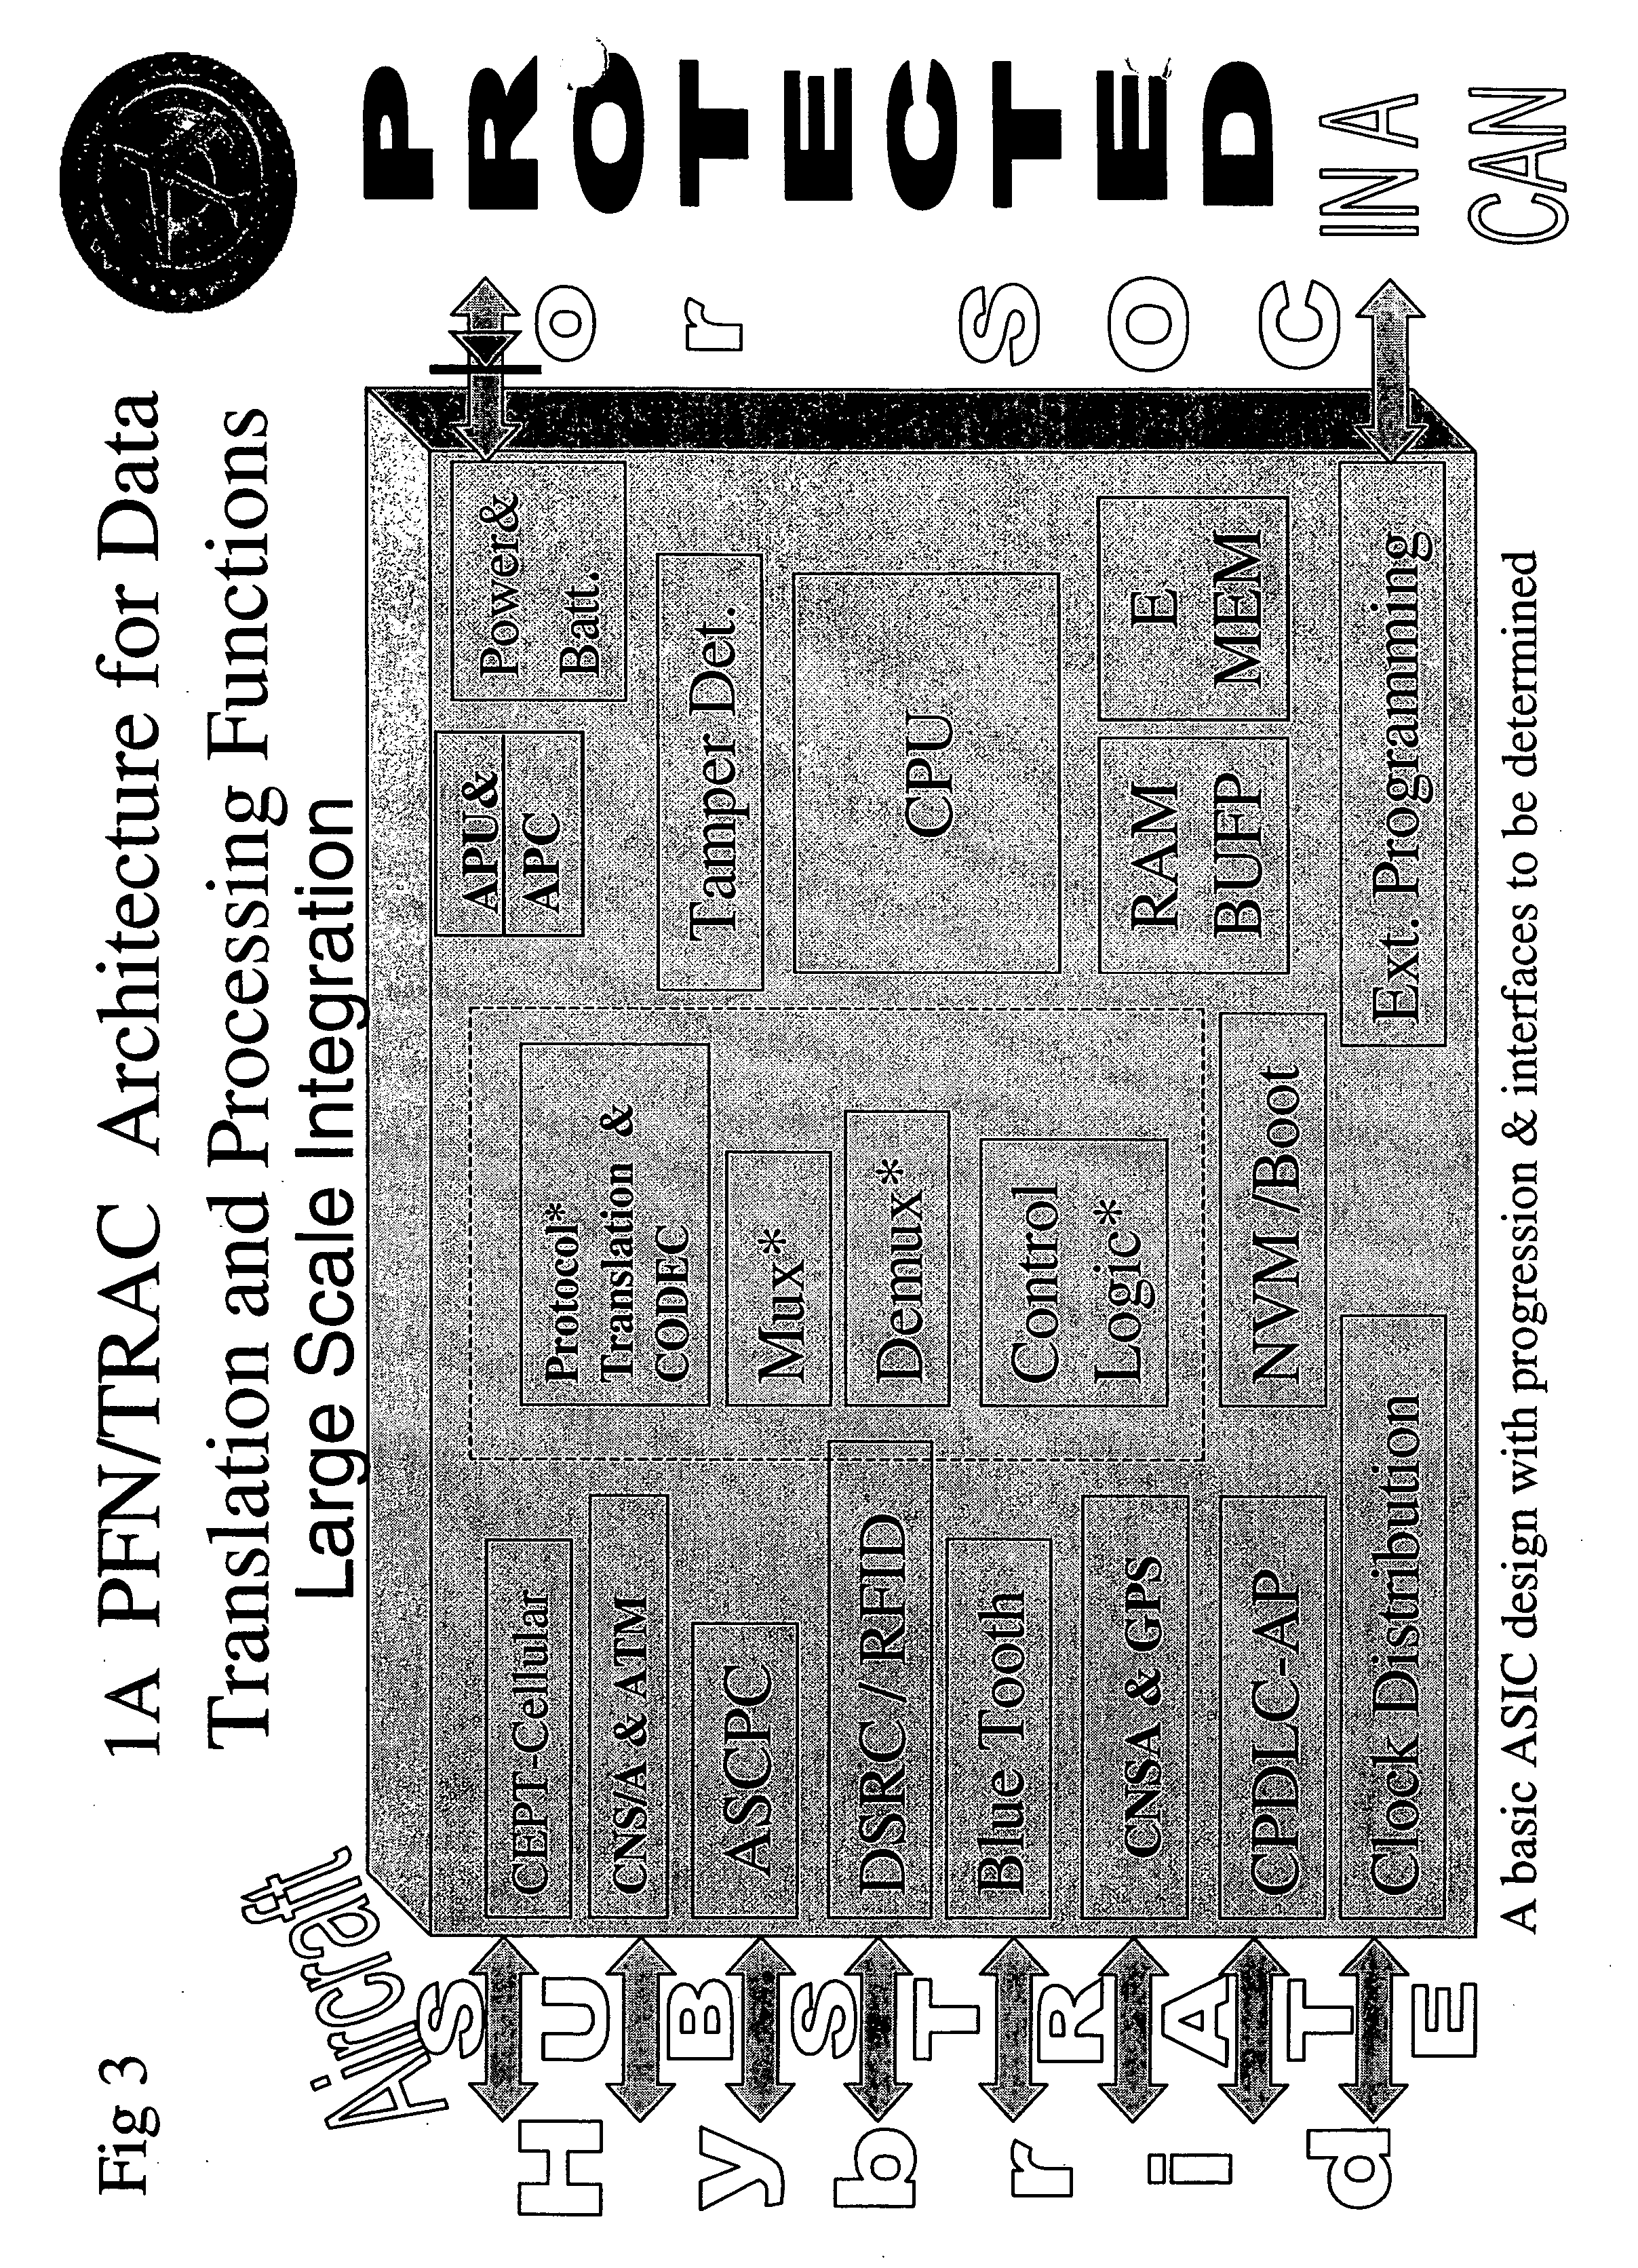 Patent Us20050187677 Pfn Trac Systemtm Faa Upgrades For This Shows Top In Vivo Flexible Large Scale Integrated Circuits Lsi Drawing